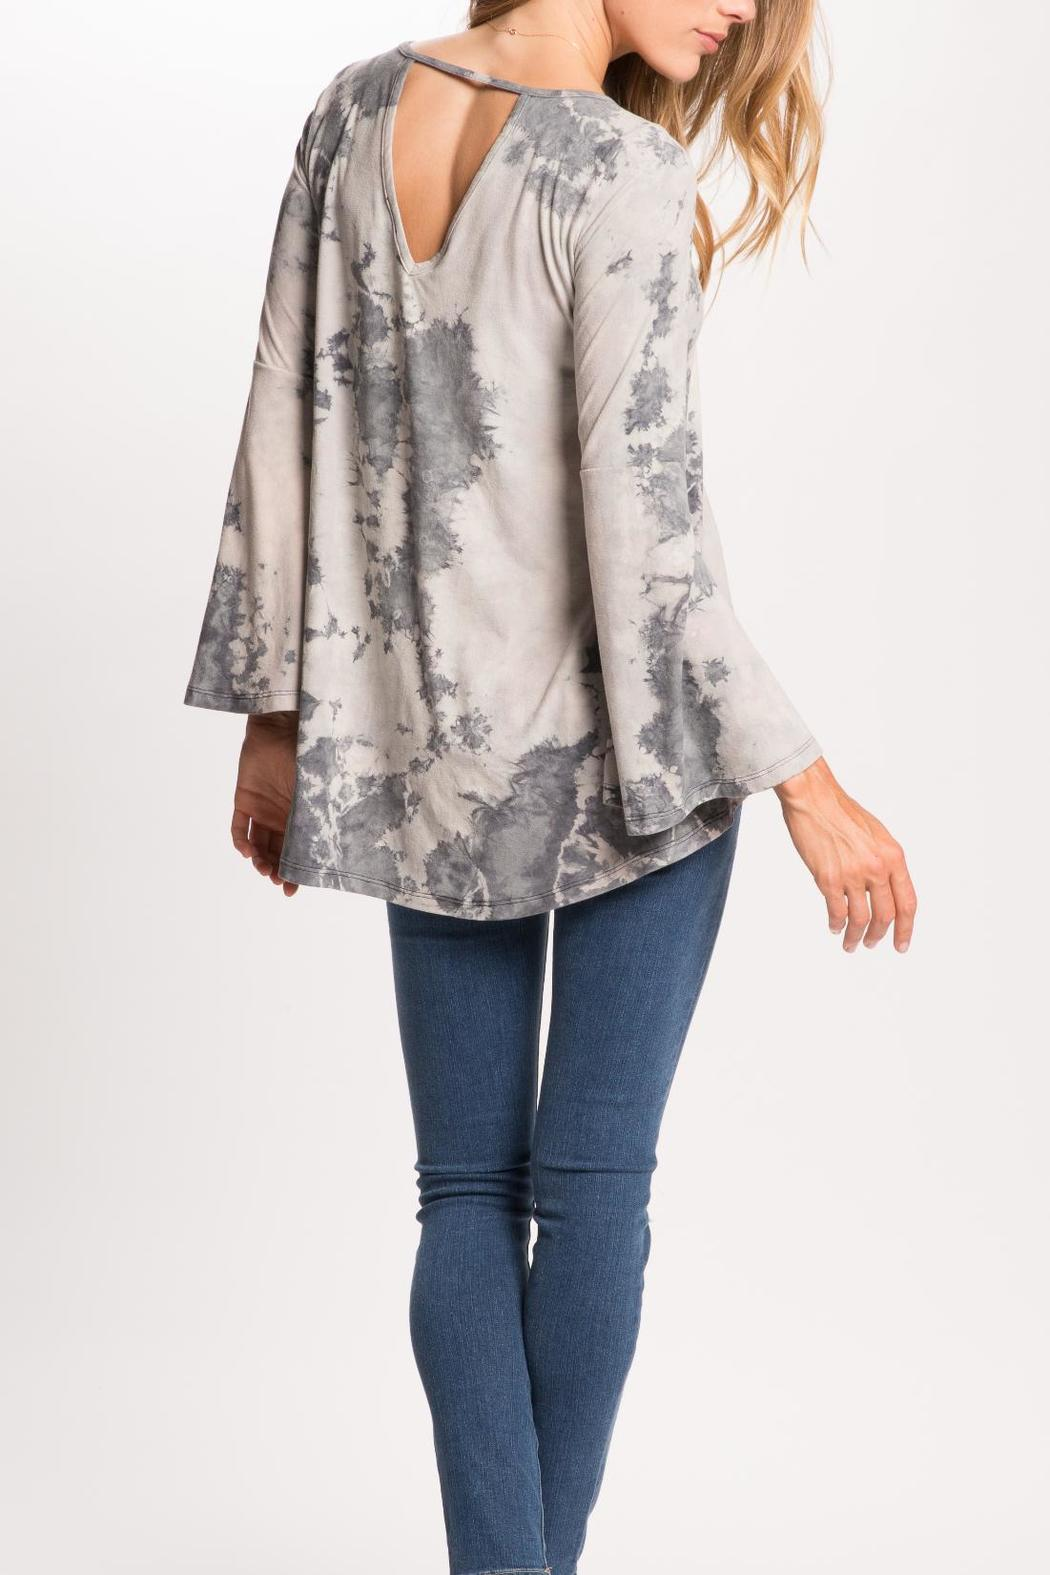 PPLA Clothing Storm Ls Top - Front Full Image